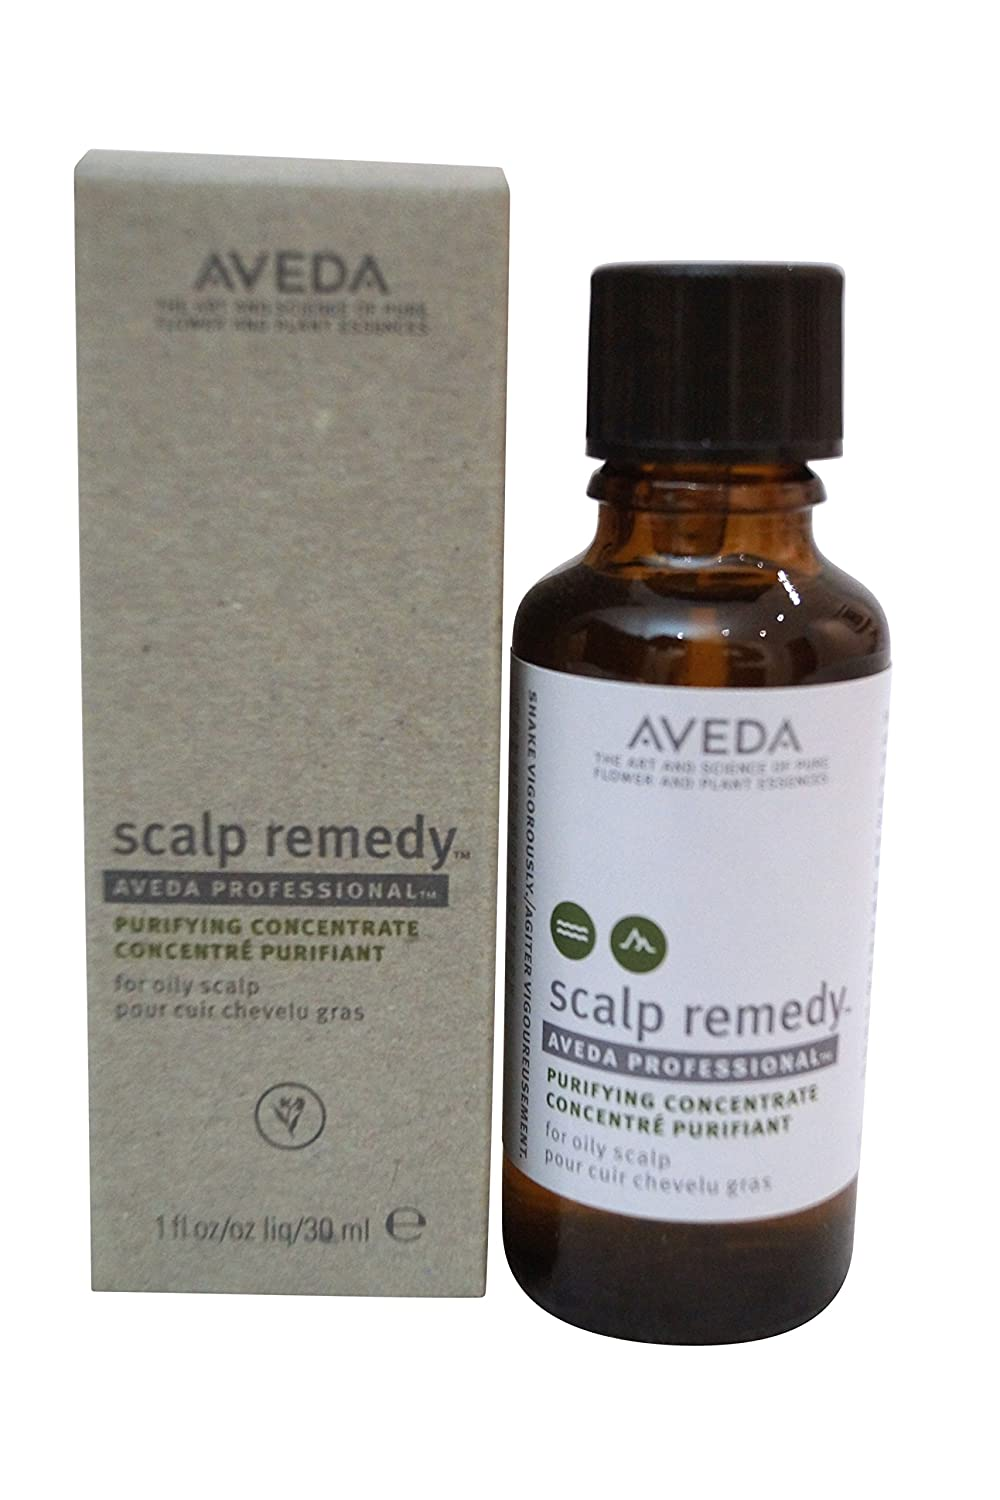 25% OFF Aveda Scalp Remedy Purifying Quality inspection Concentrate Oily for 1 oz